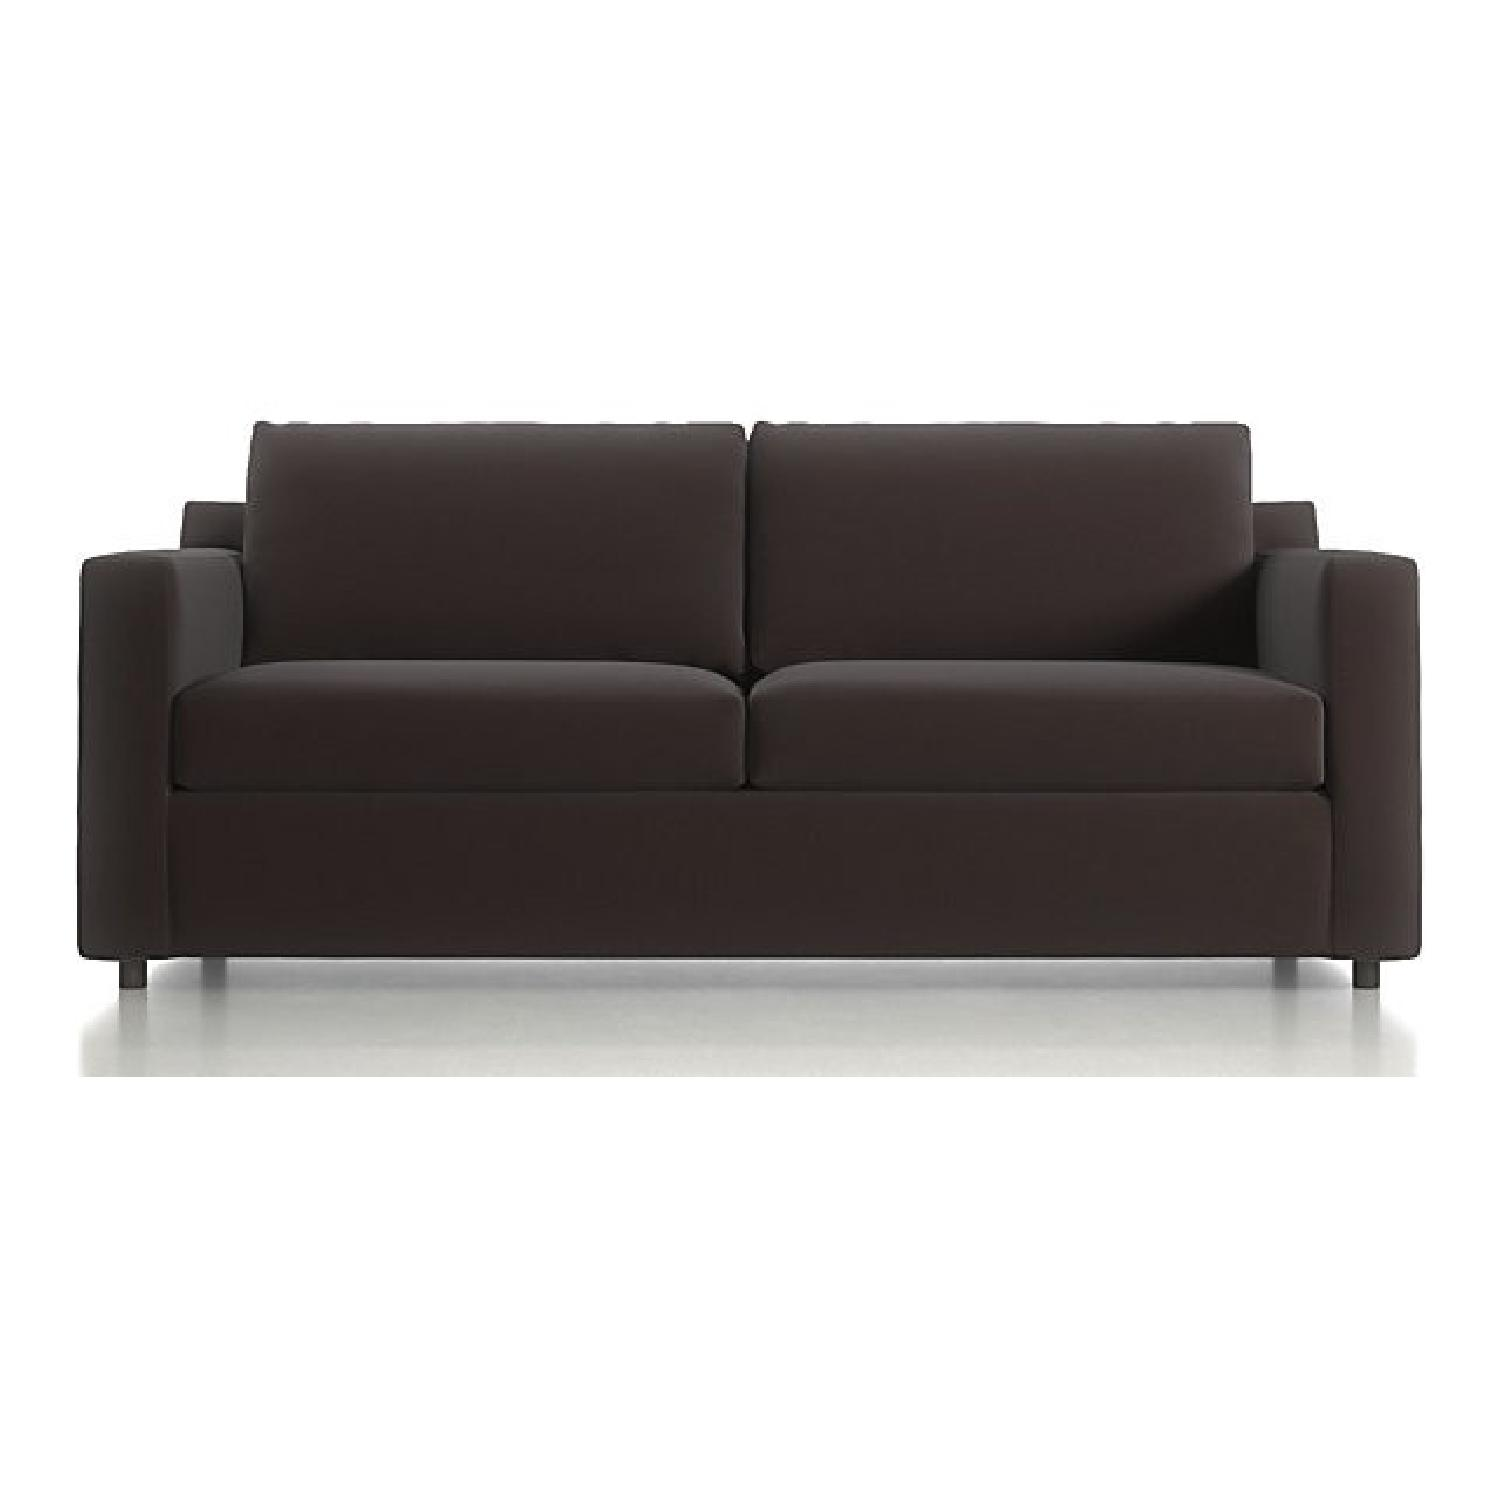 Crate & Barrel Barrett Sofa & Matching Armchair - image-0